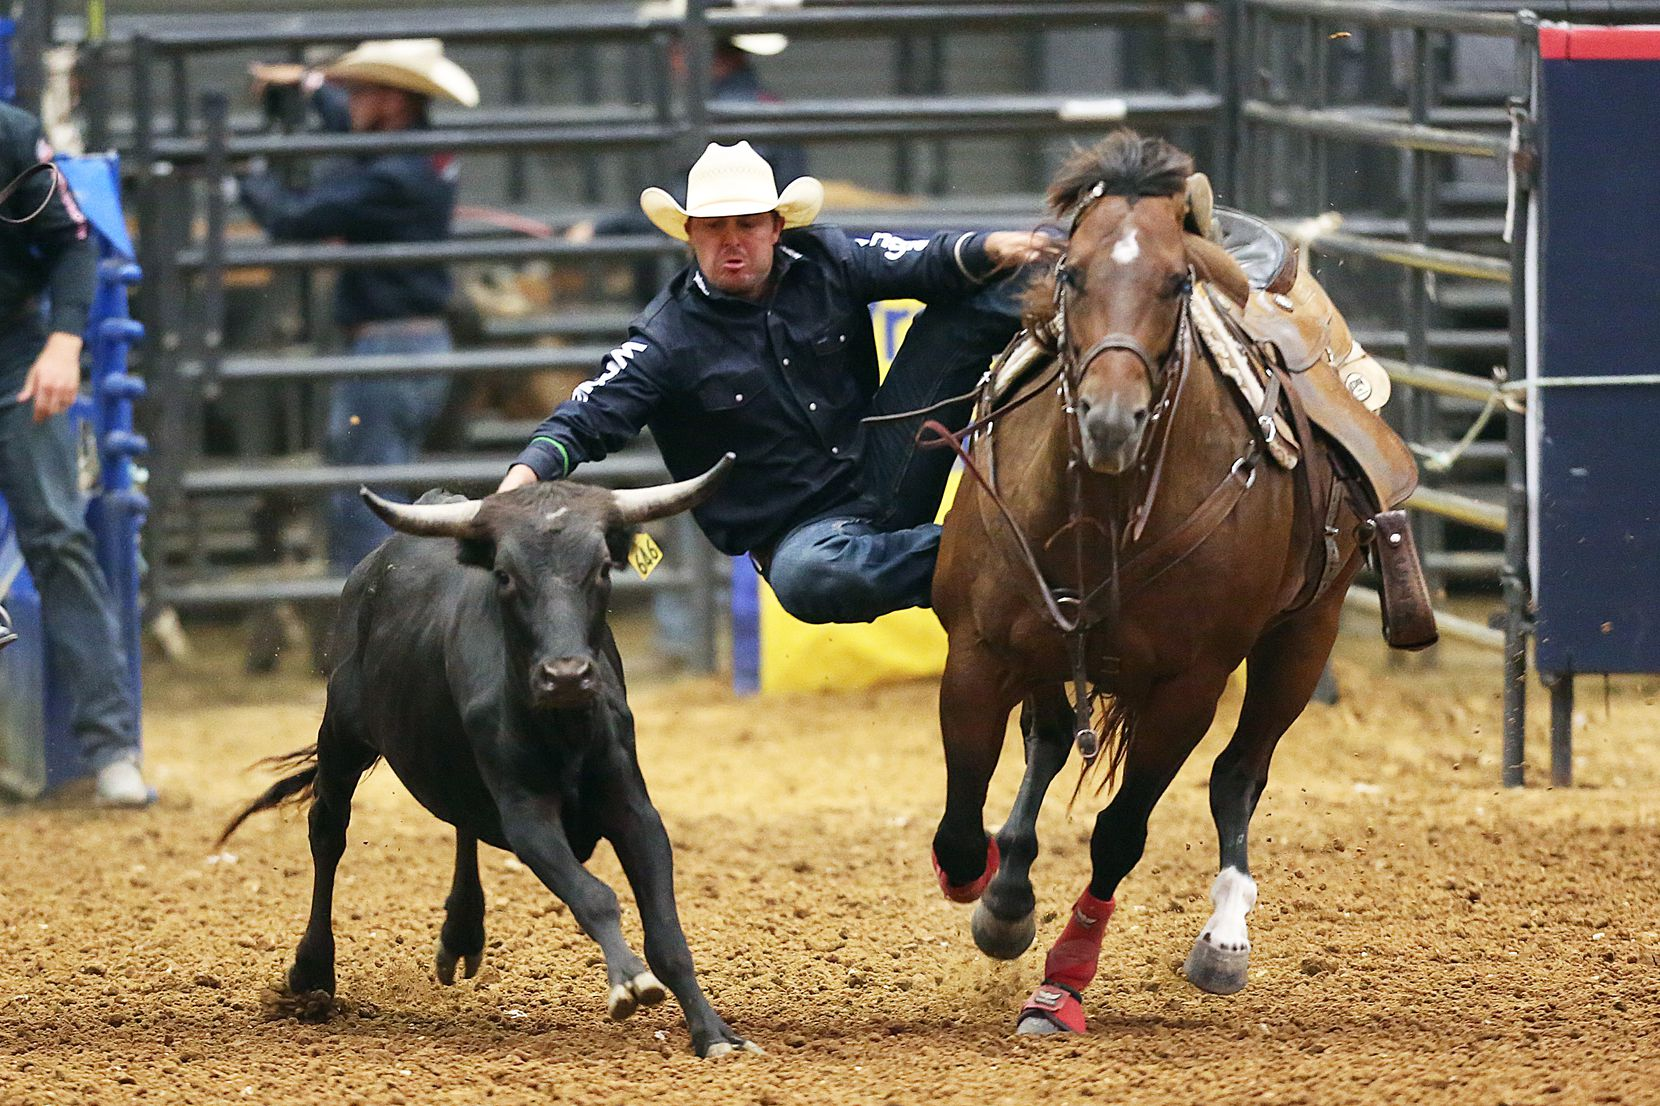 Cody Harmon competes in steer wrestling on Teacher Appreciation Night at the Mesquite Rodeo Championship arena in 2020.